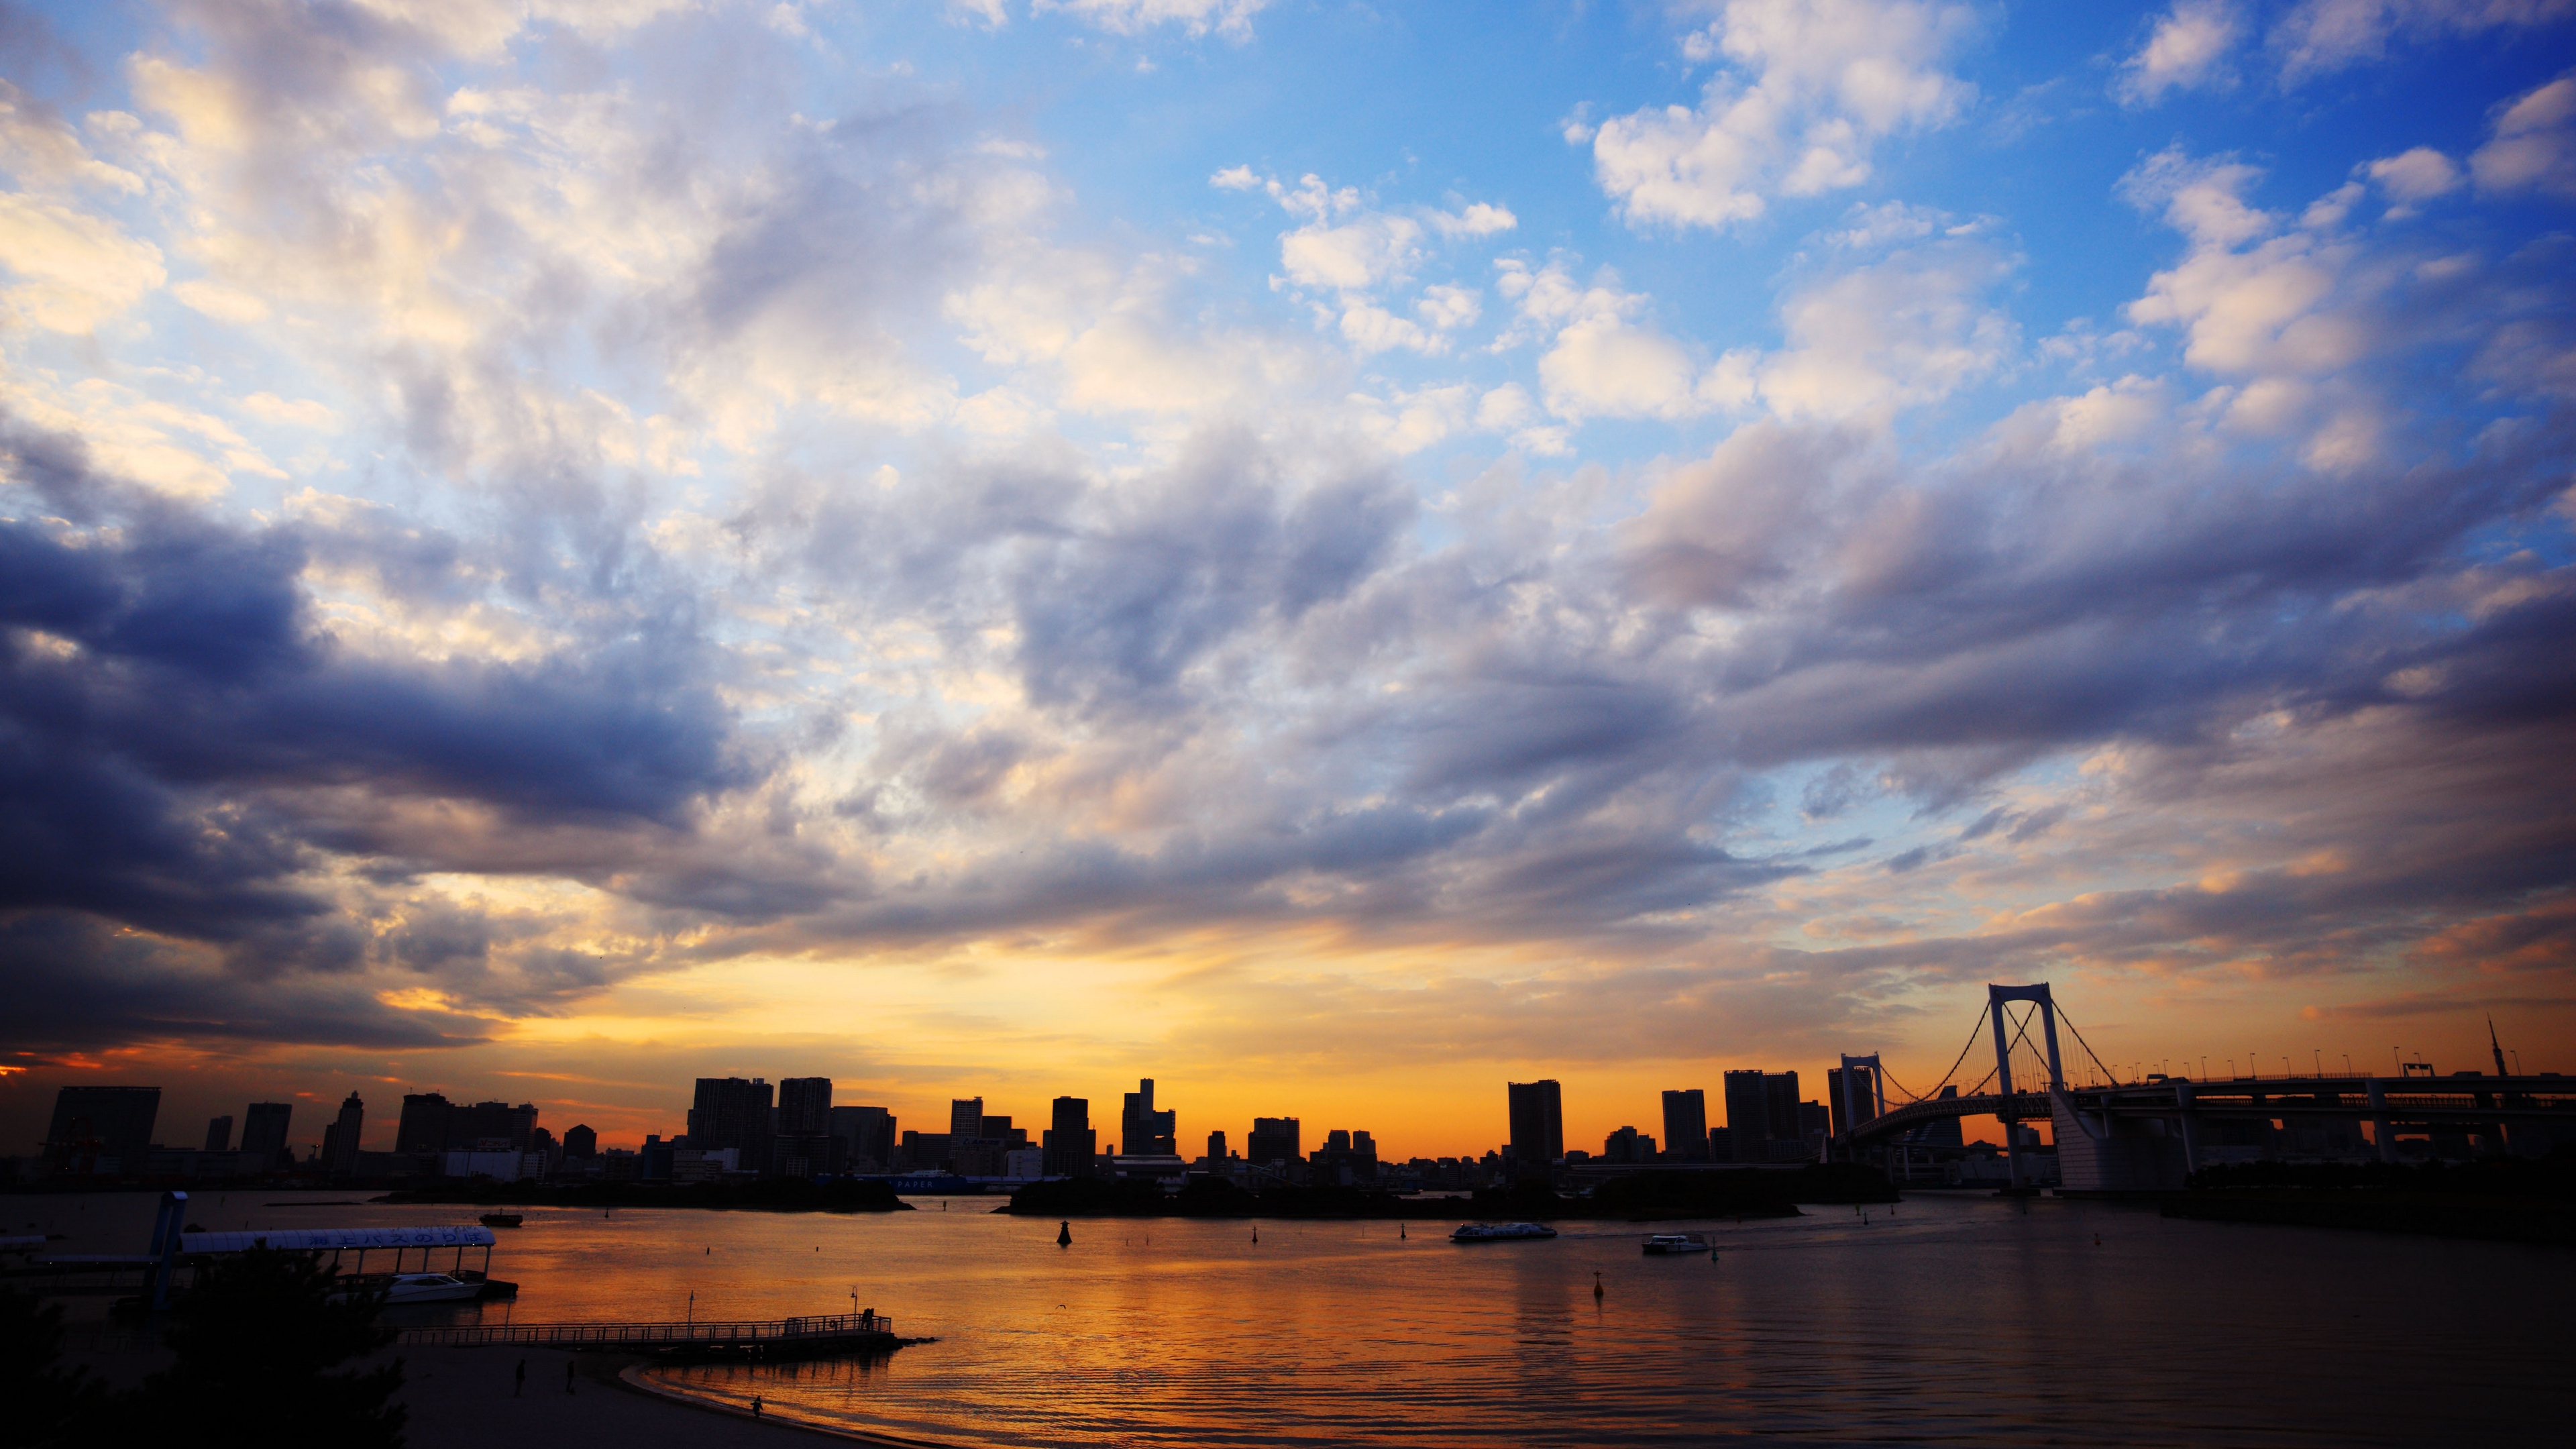 clouds sky sea tokyo japan blue city bridge sunset 4k 1538066481 - clouds, sky, sea, tokyo, japan, blue, city, bridge, sunset 4k - Sky, Sea, Clouds